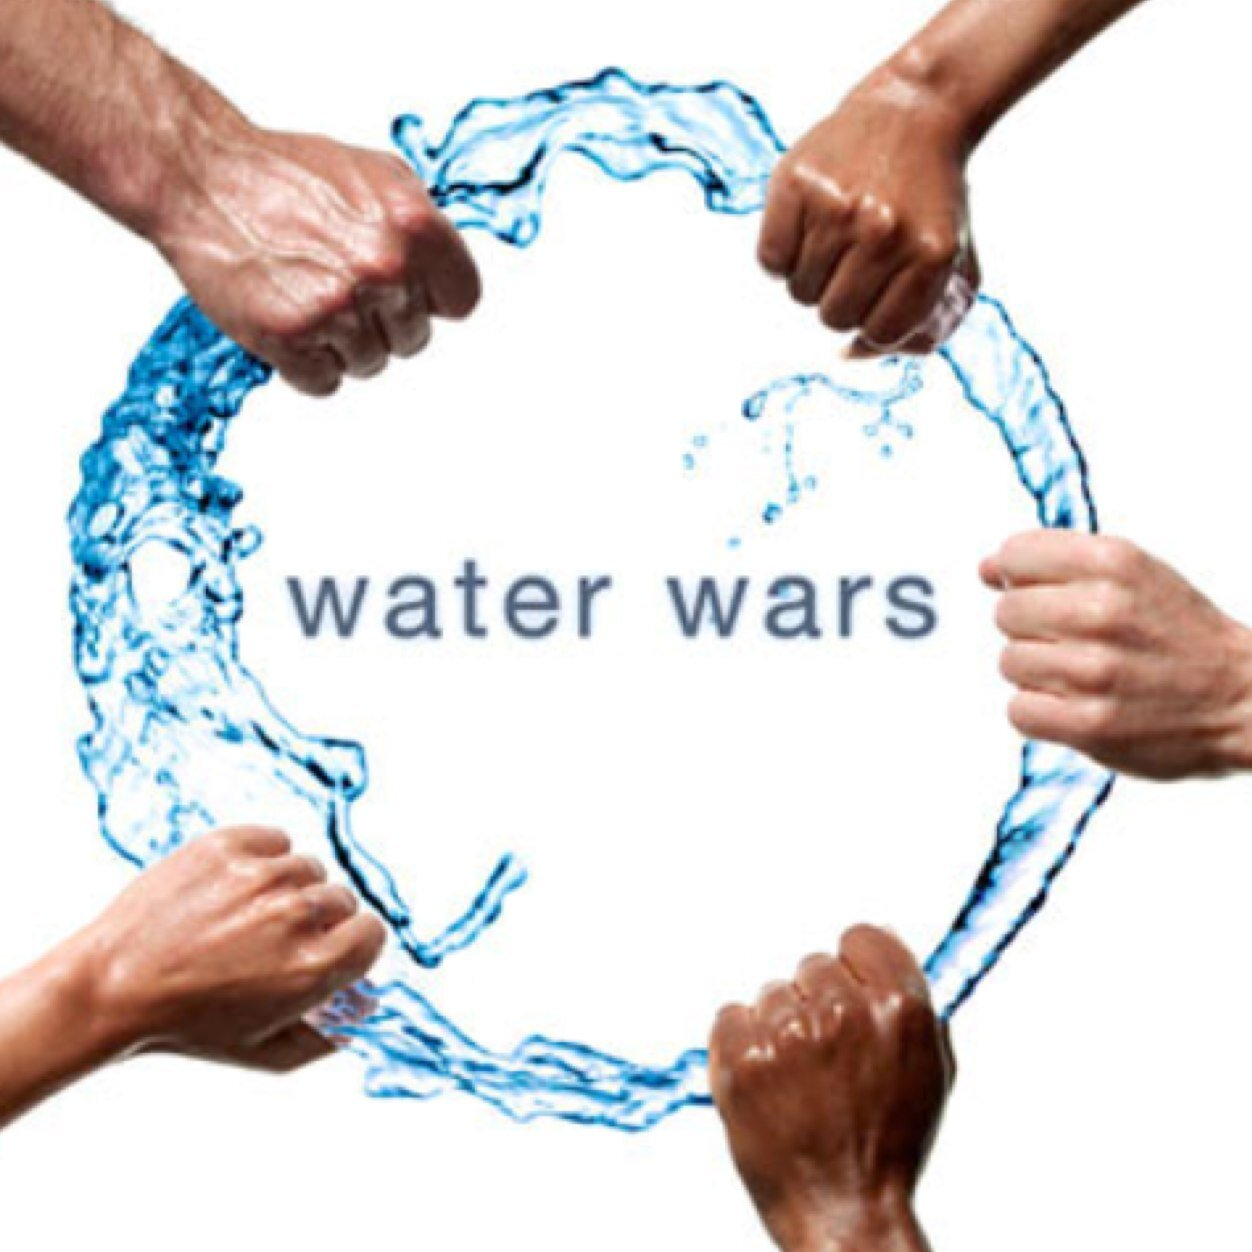 the first water war The first wizarding war was a major conflict with foundations as early as the 1940s, but officially beginning in 1970 and ending in 1981 it marked the original reign&quot of the dark lord voldemort.